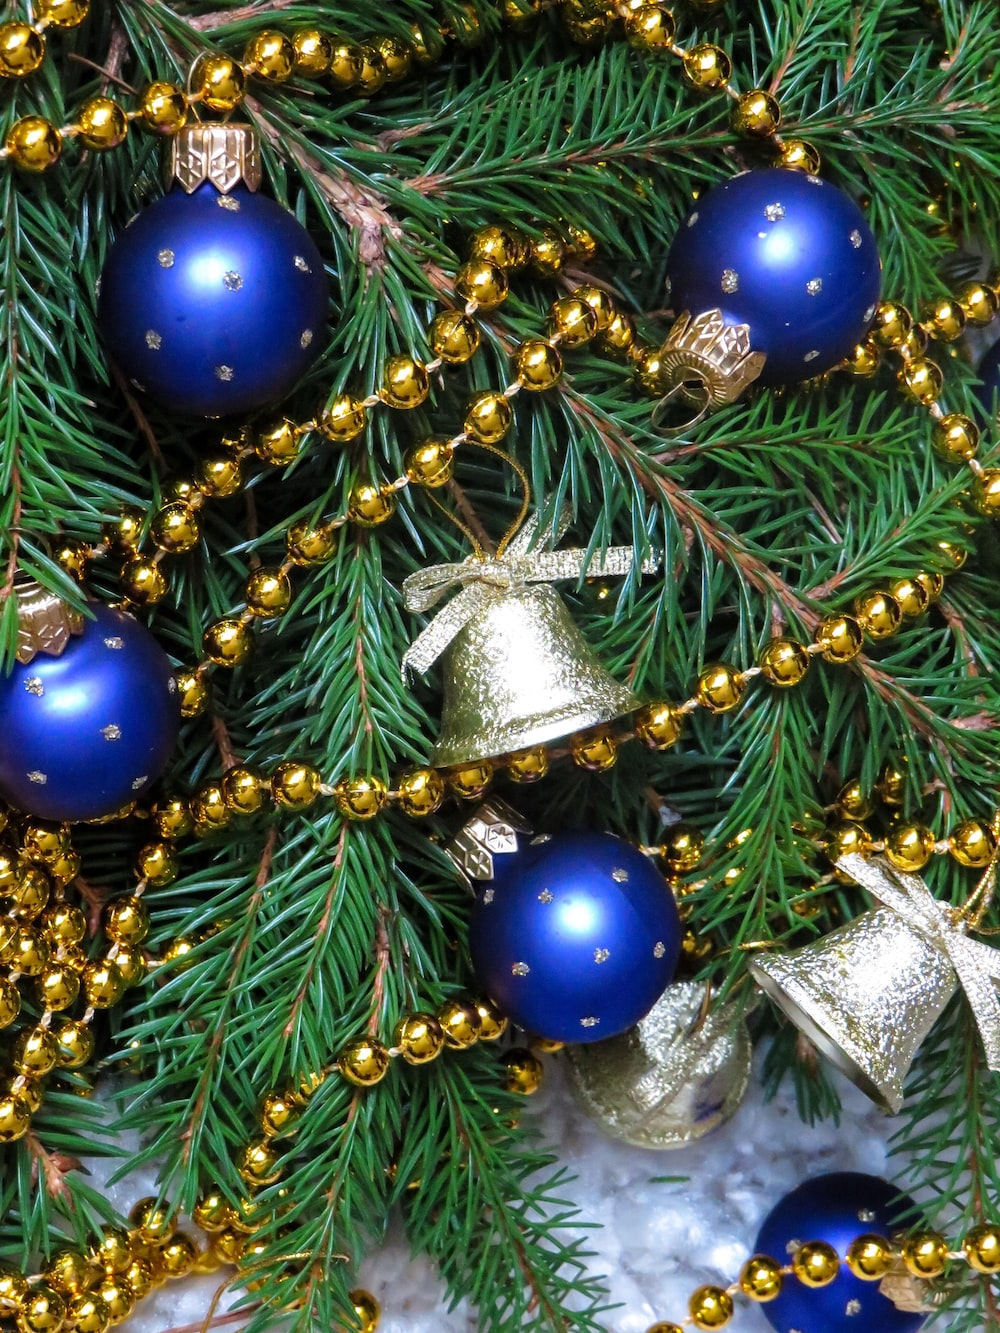 blue Christmas bauble balls photo